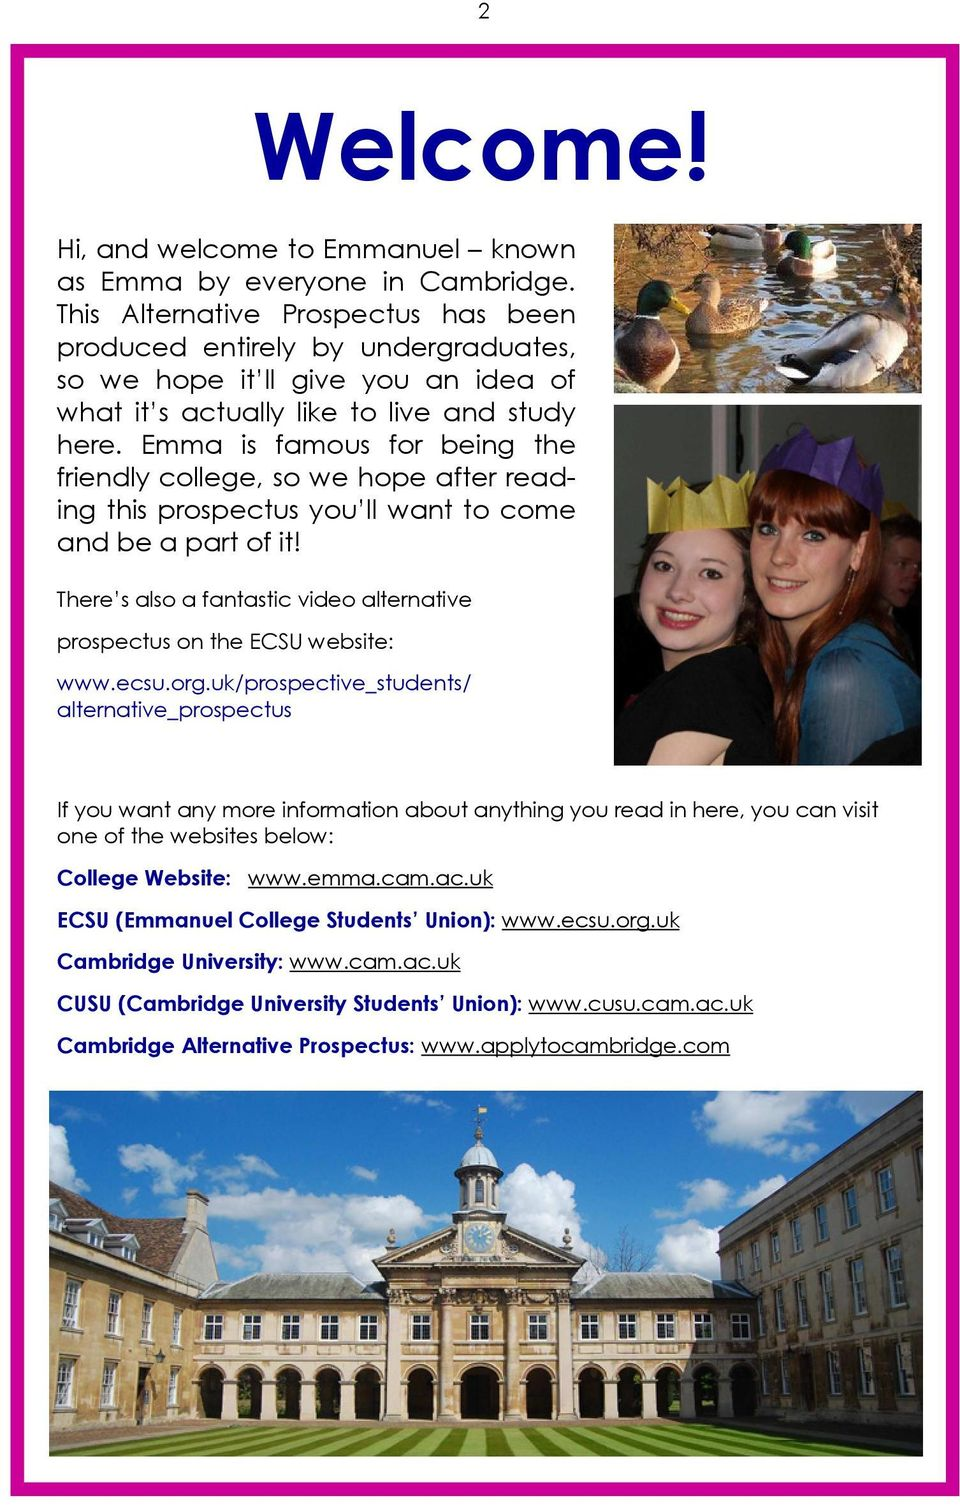 Emma is famous for being the friendly college, so we hope after reading this prospectus you ll want to come and be a part of it!